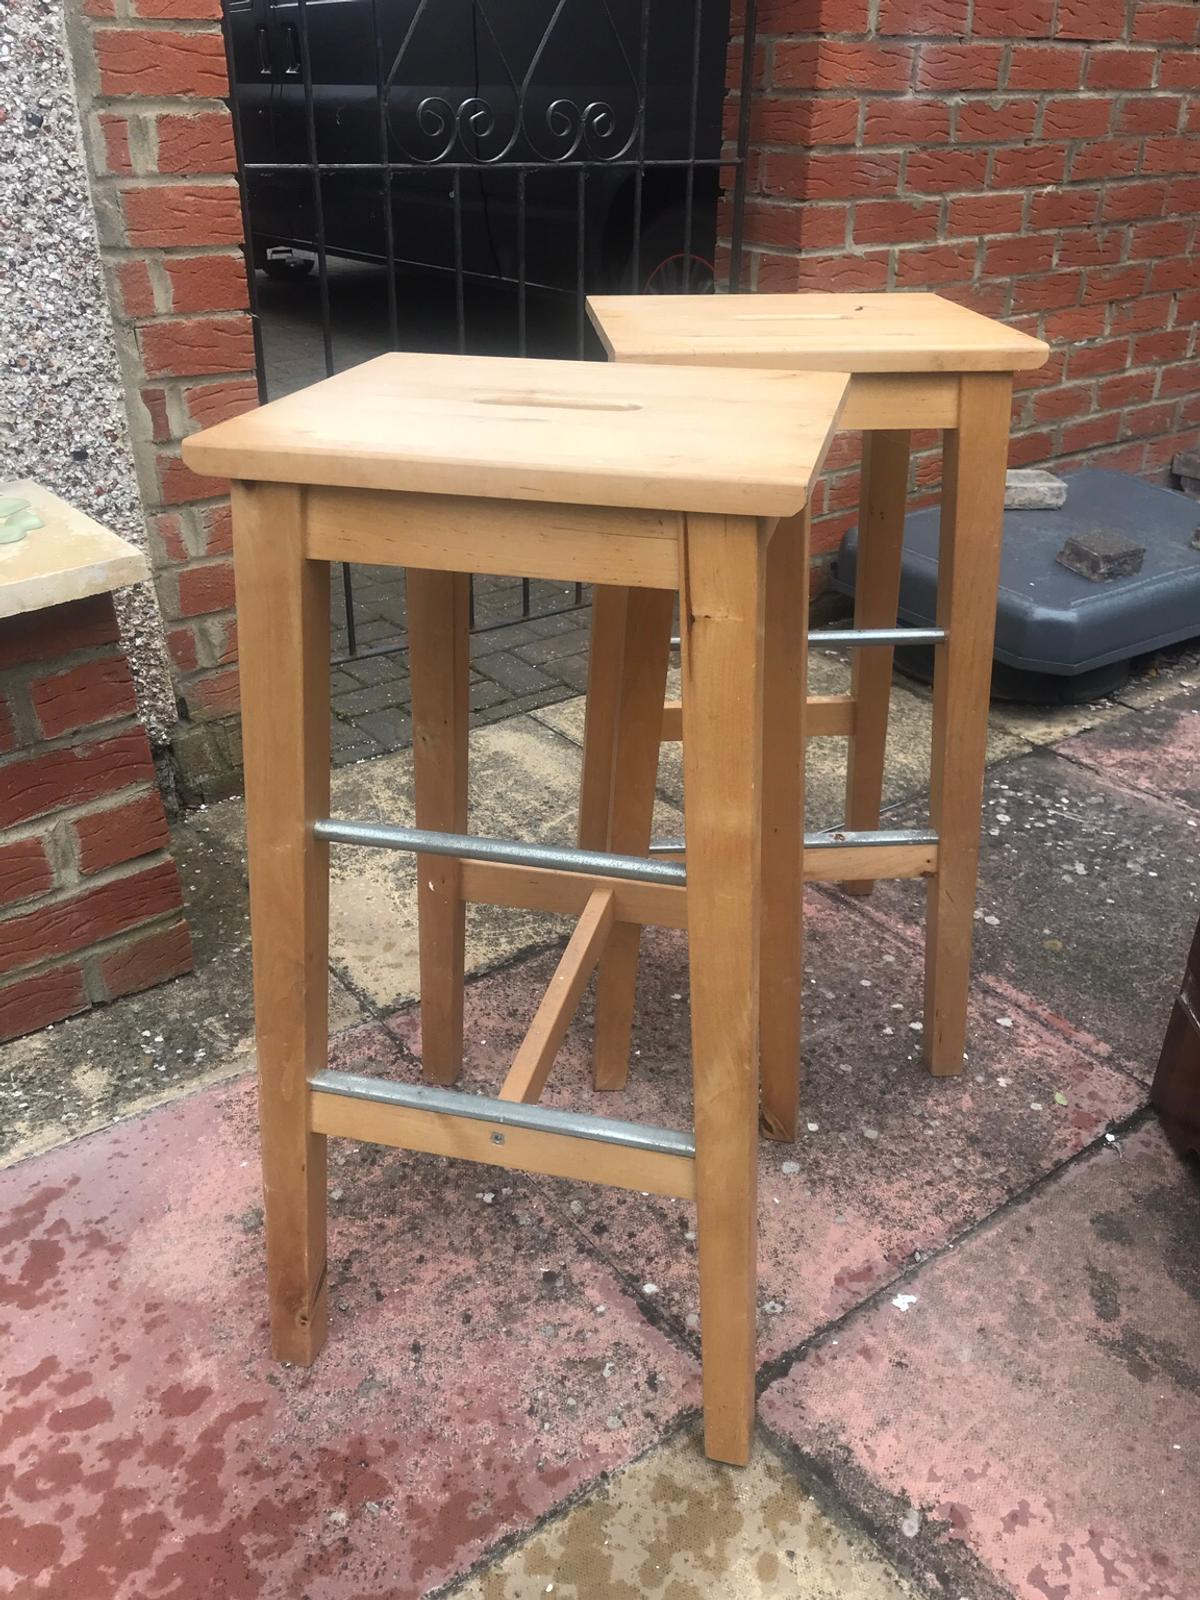 Stupendous Solid Pine Breakfast Bar Stools X 2 In Ts26 Hartlepool For Evergreenethics Interior Chair Design Evergreenethicsorg